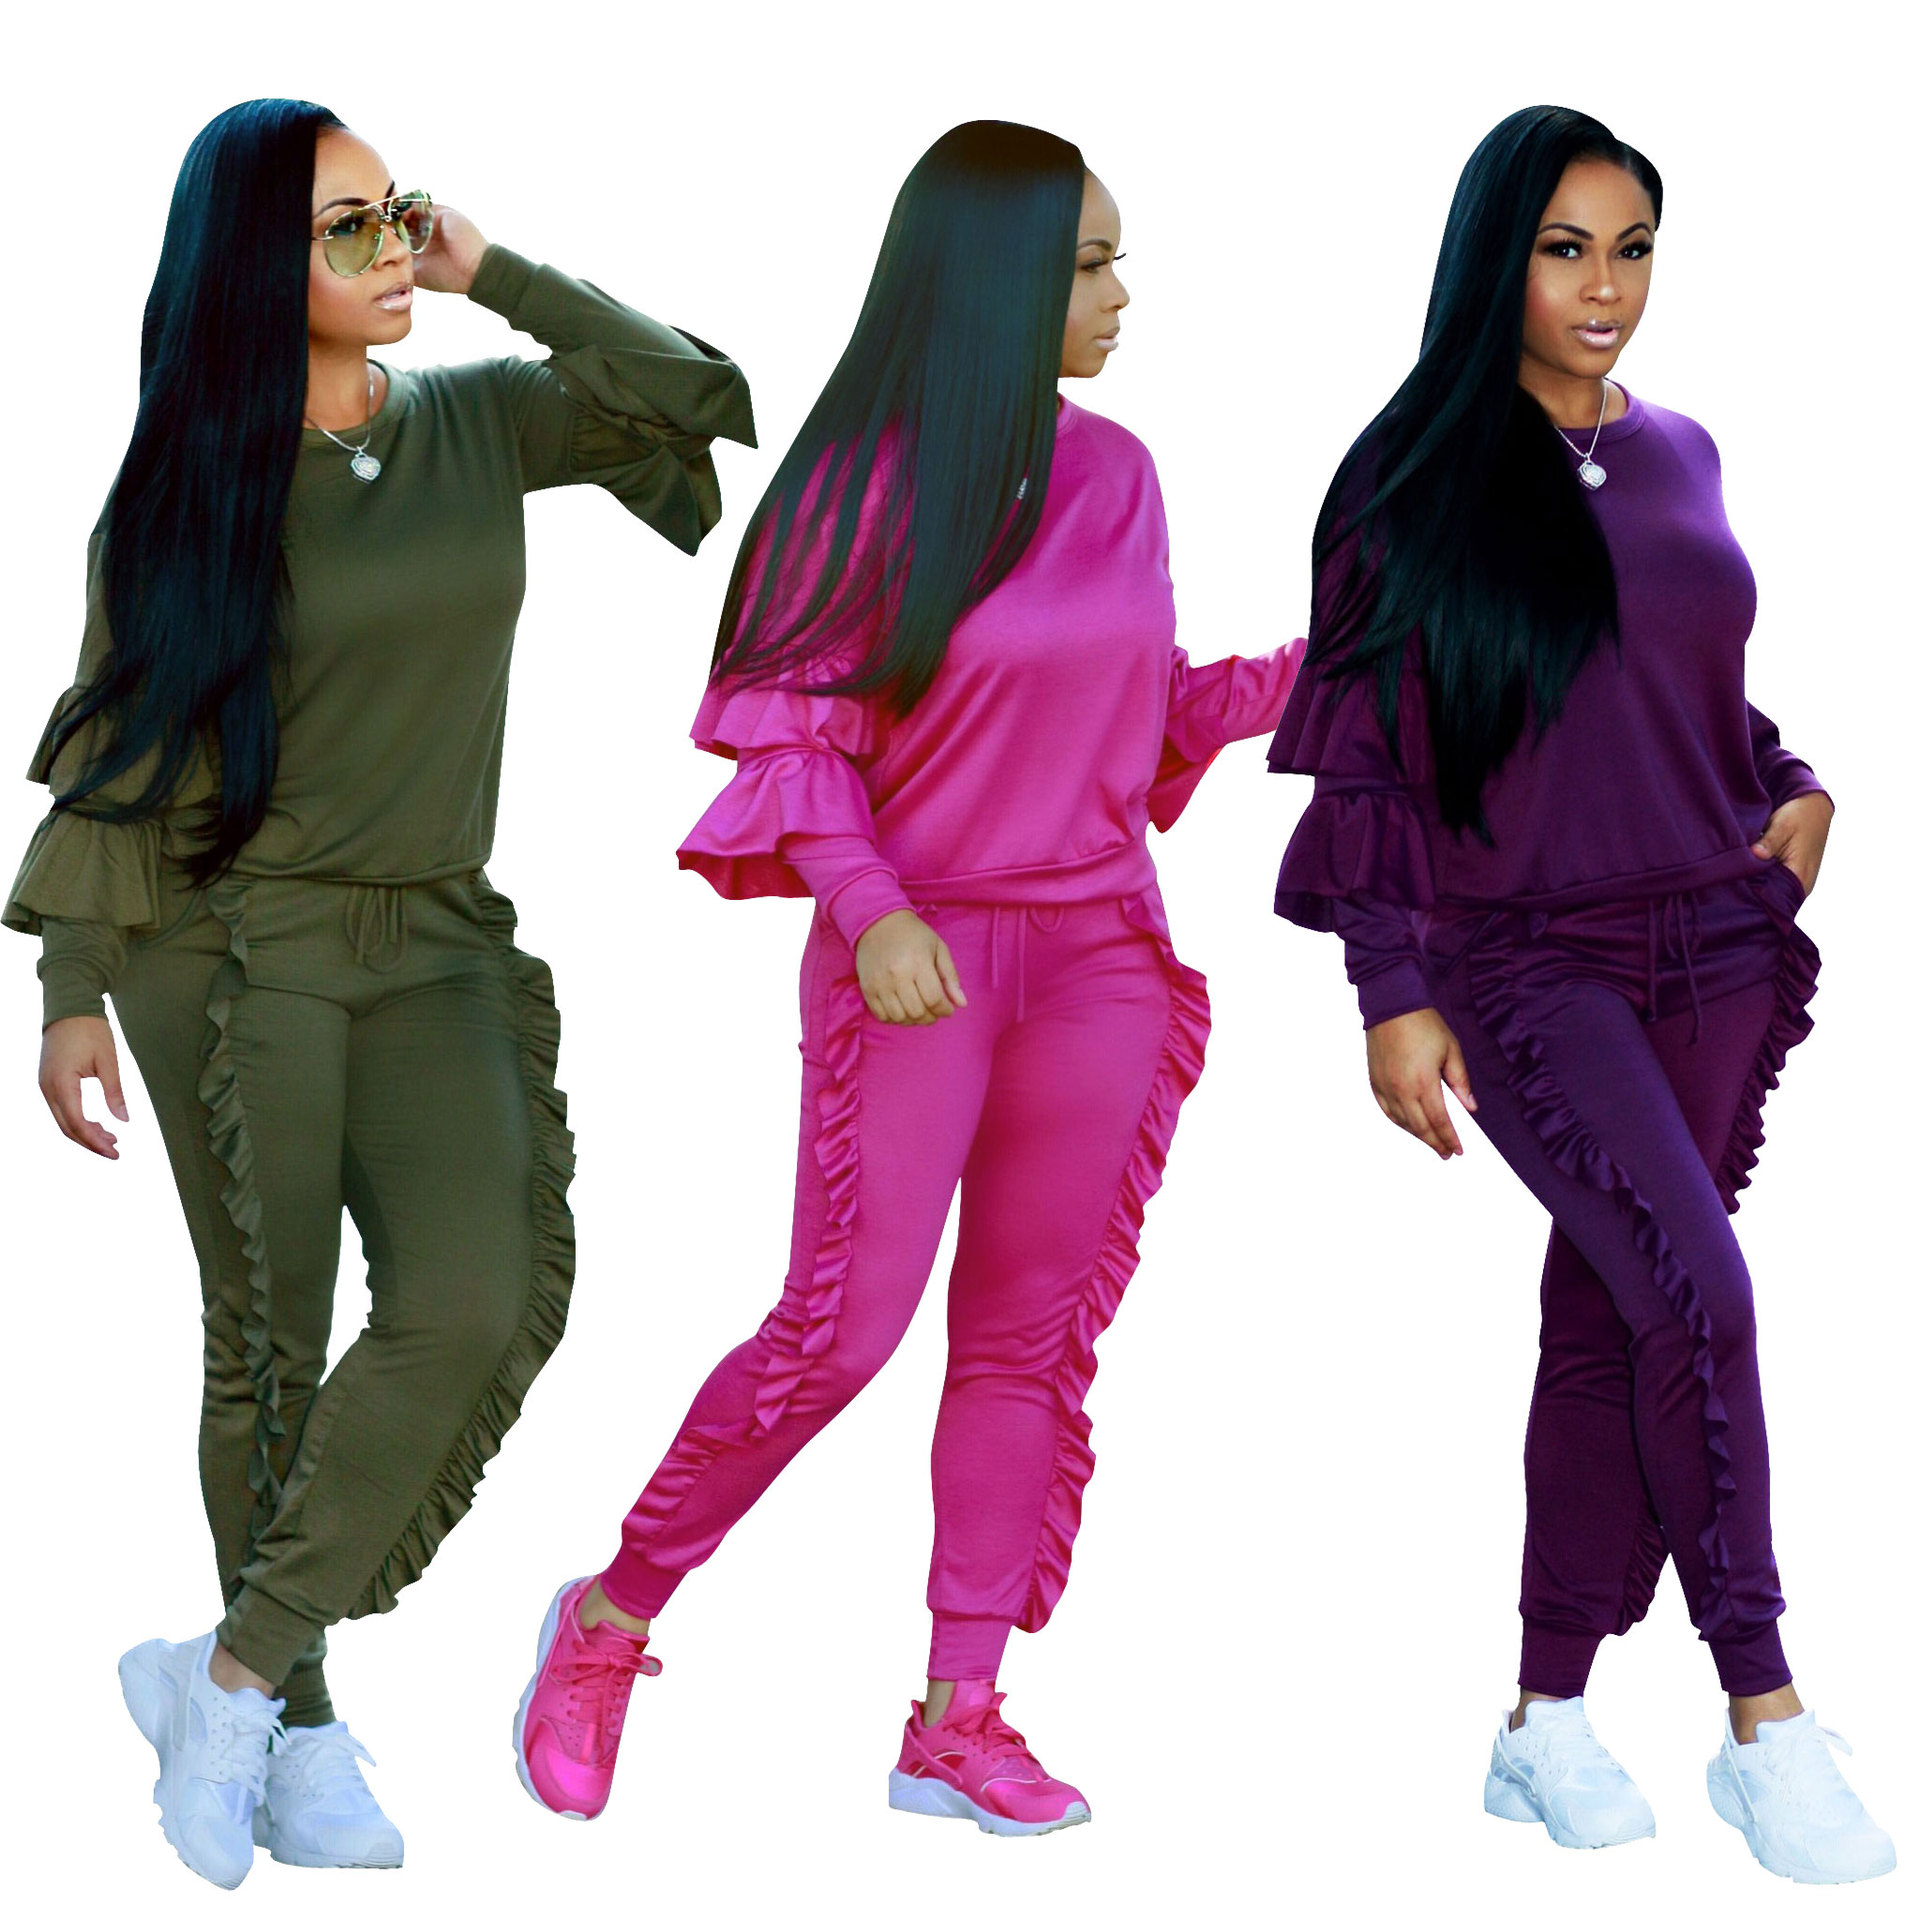 Plus Size 2 Piece Set Women Tracksuit Autumn Winter Festival Ruffle Top+Pant Sweat Suits Two Piece Outfits Matching Sets